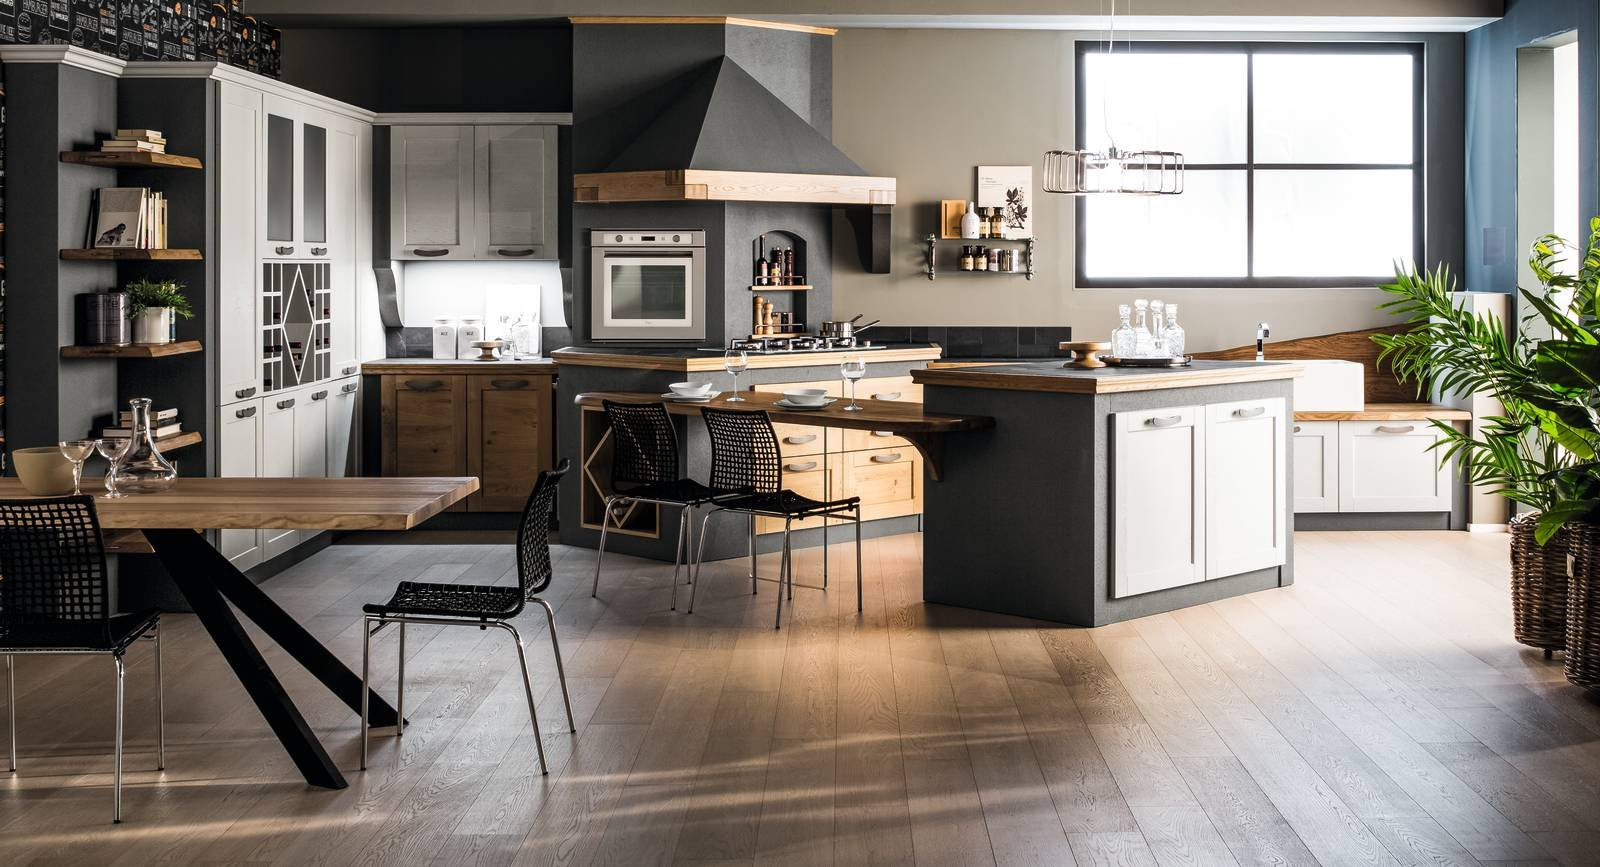 Arrex curry cucine stile country cose di casa for Cucine stile country